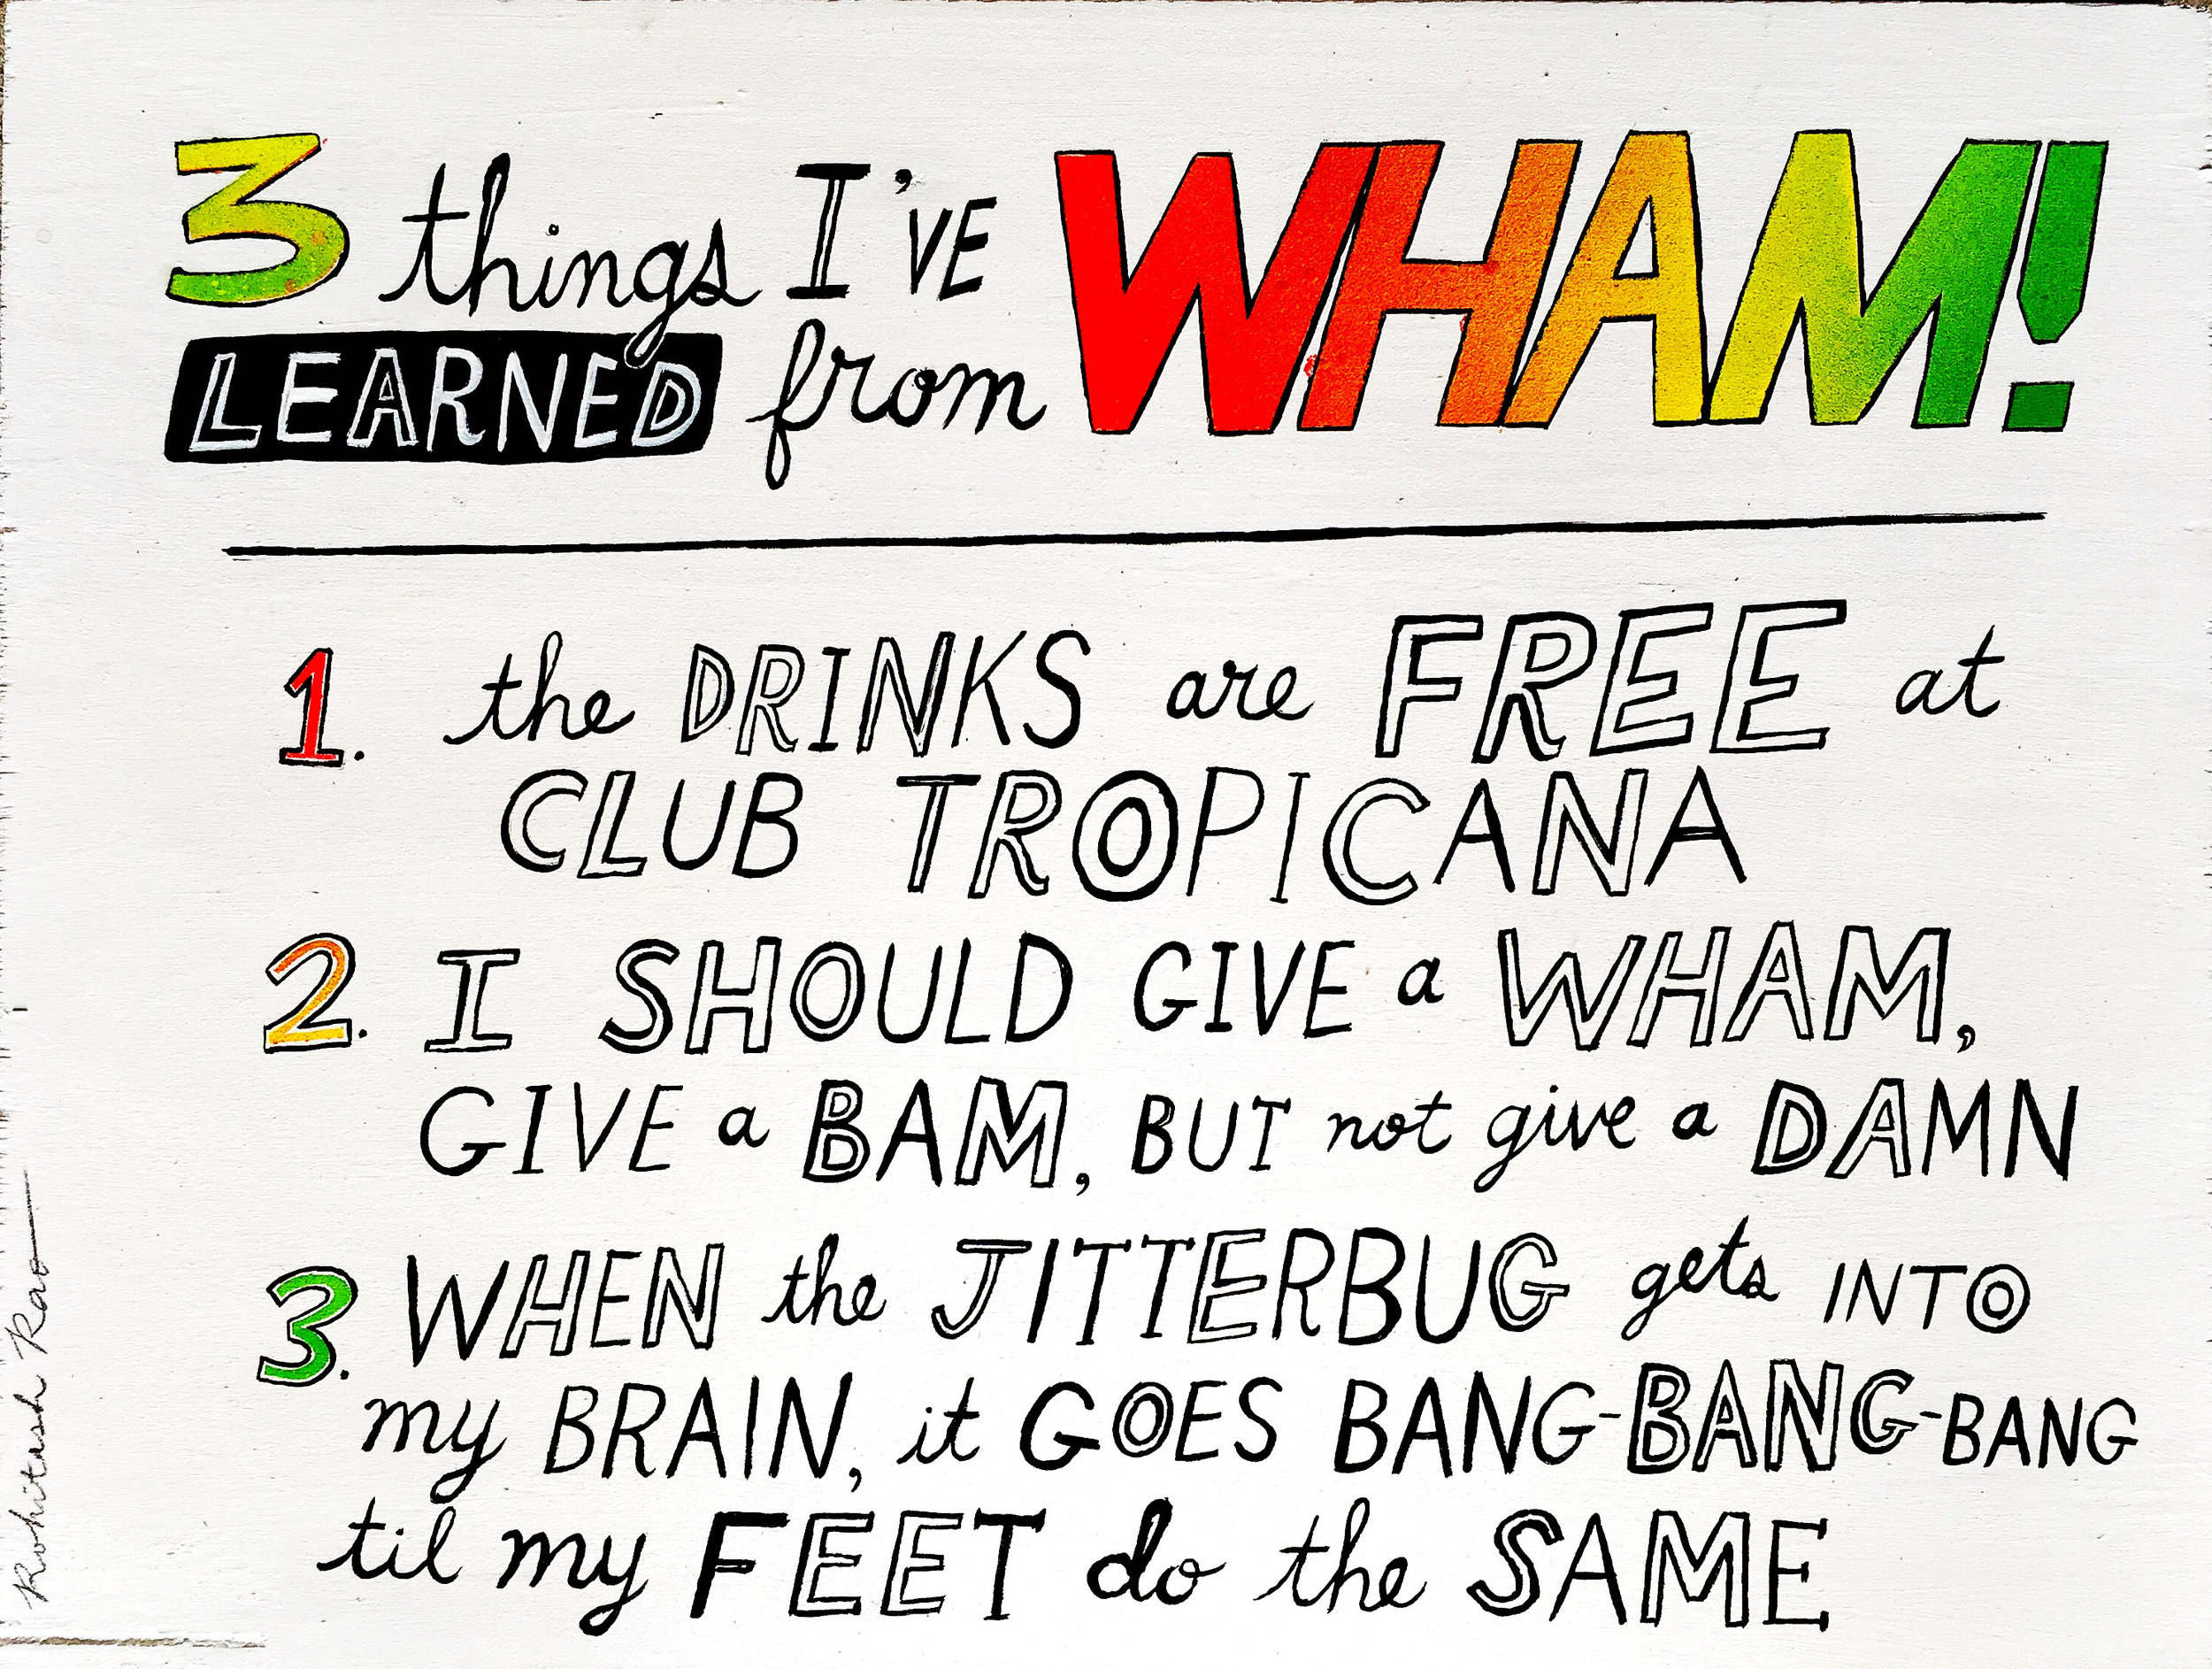 3 THINGS I'VE LEARNED FROM WHAM